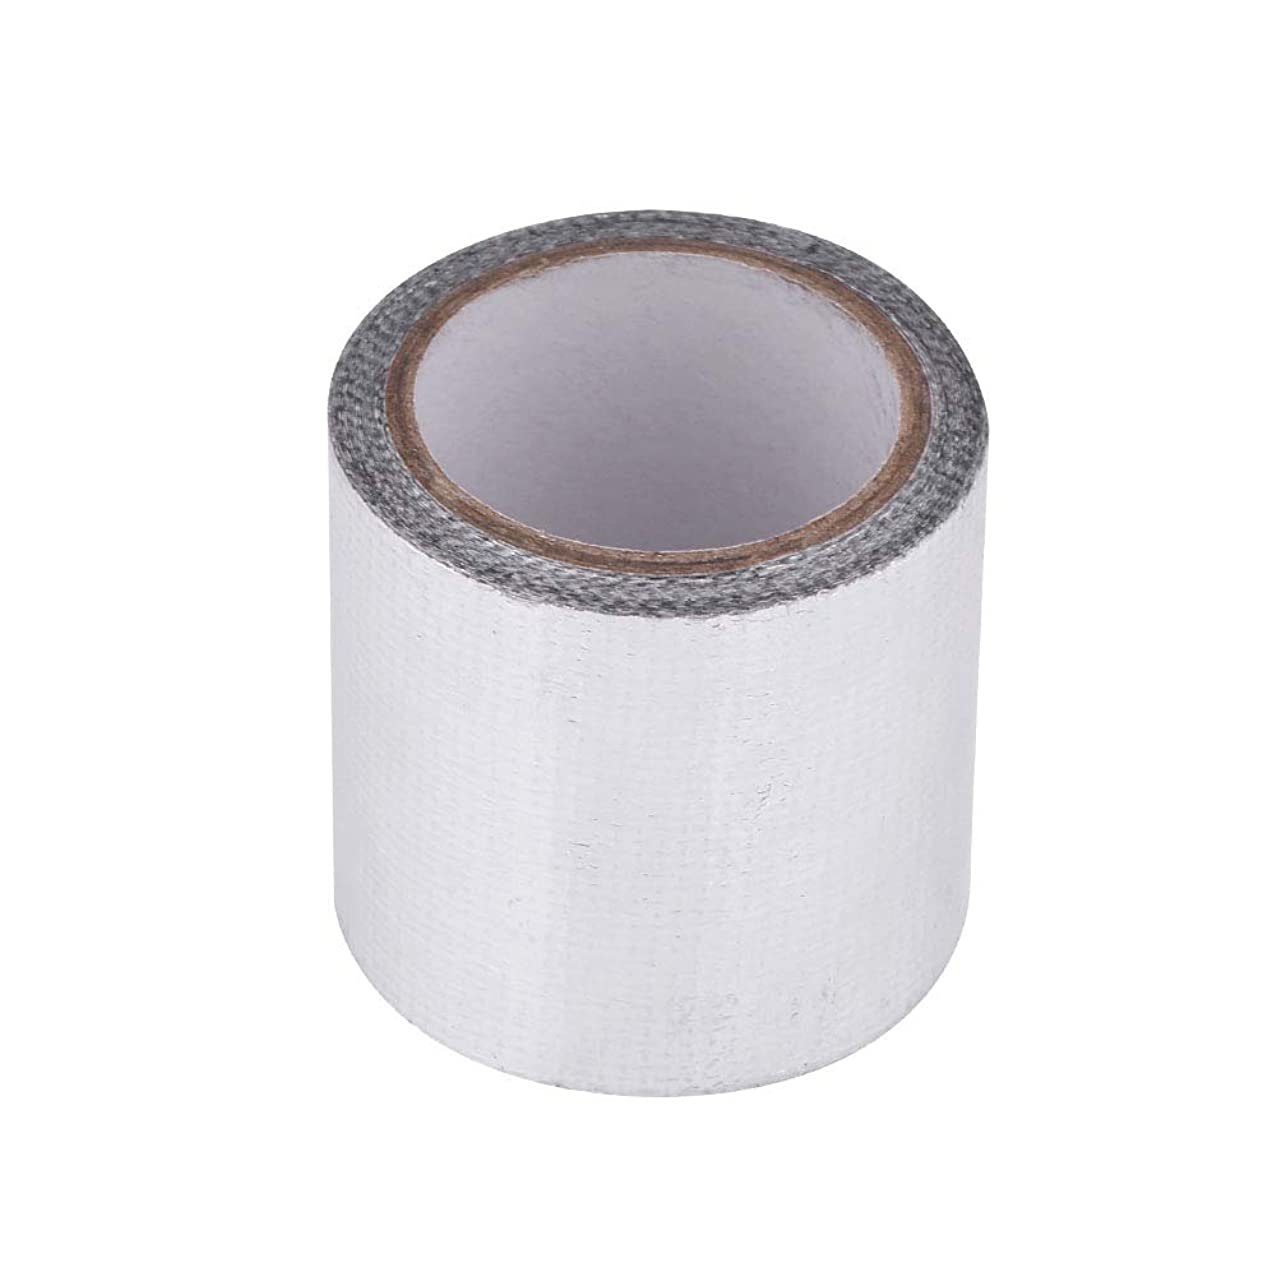 Aluminum Tape, Heat Proof High Temp Heat-Resistant Adhesive Aluminium Fiber Tape Rolls for Repair Remote Control Vehicle